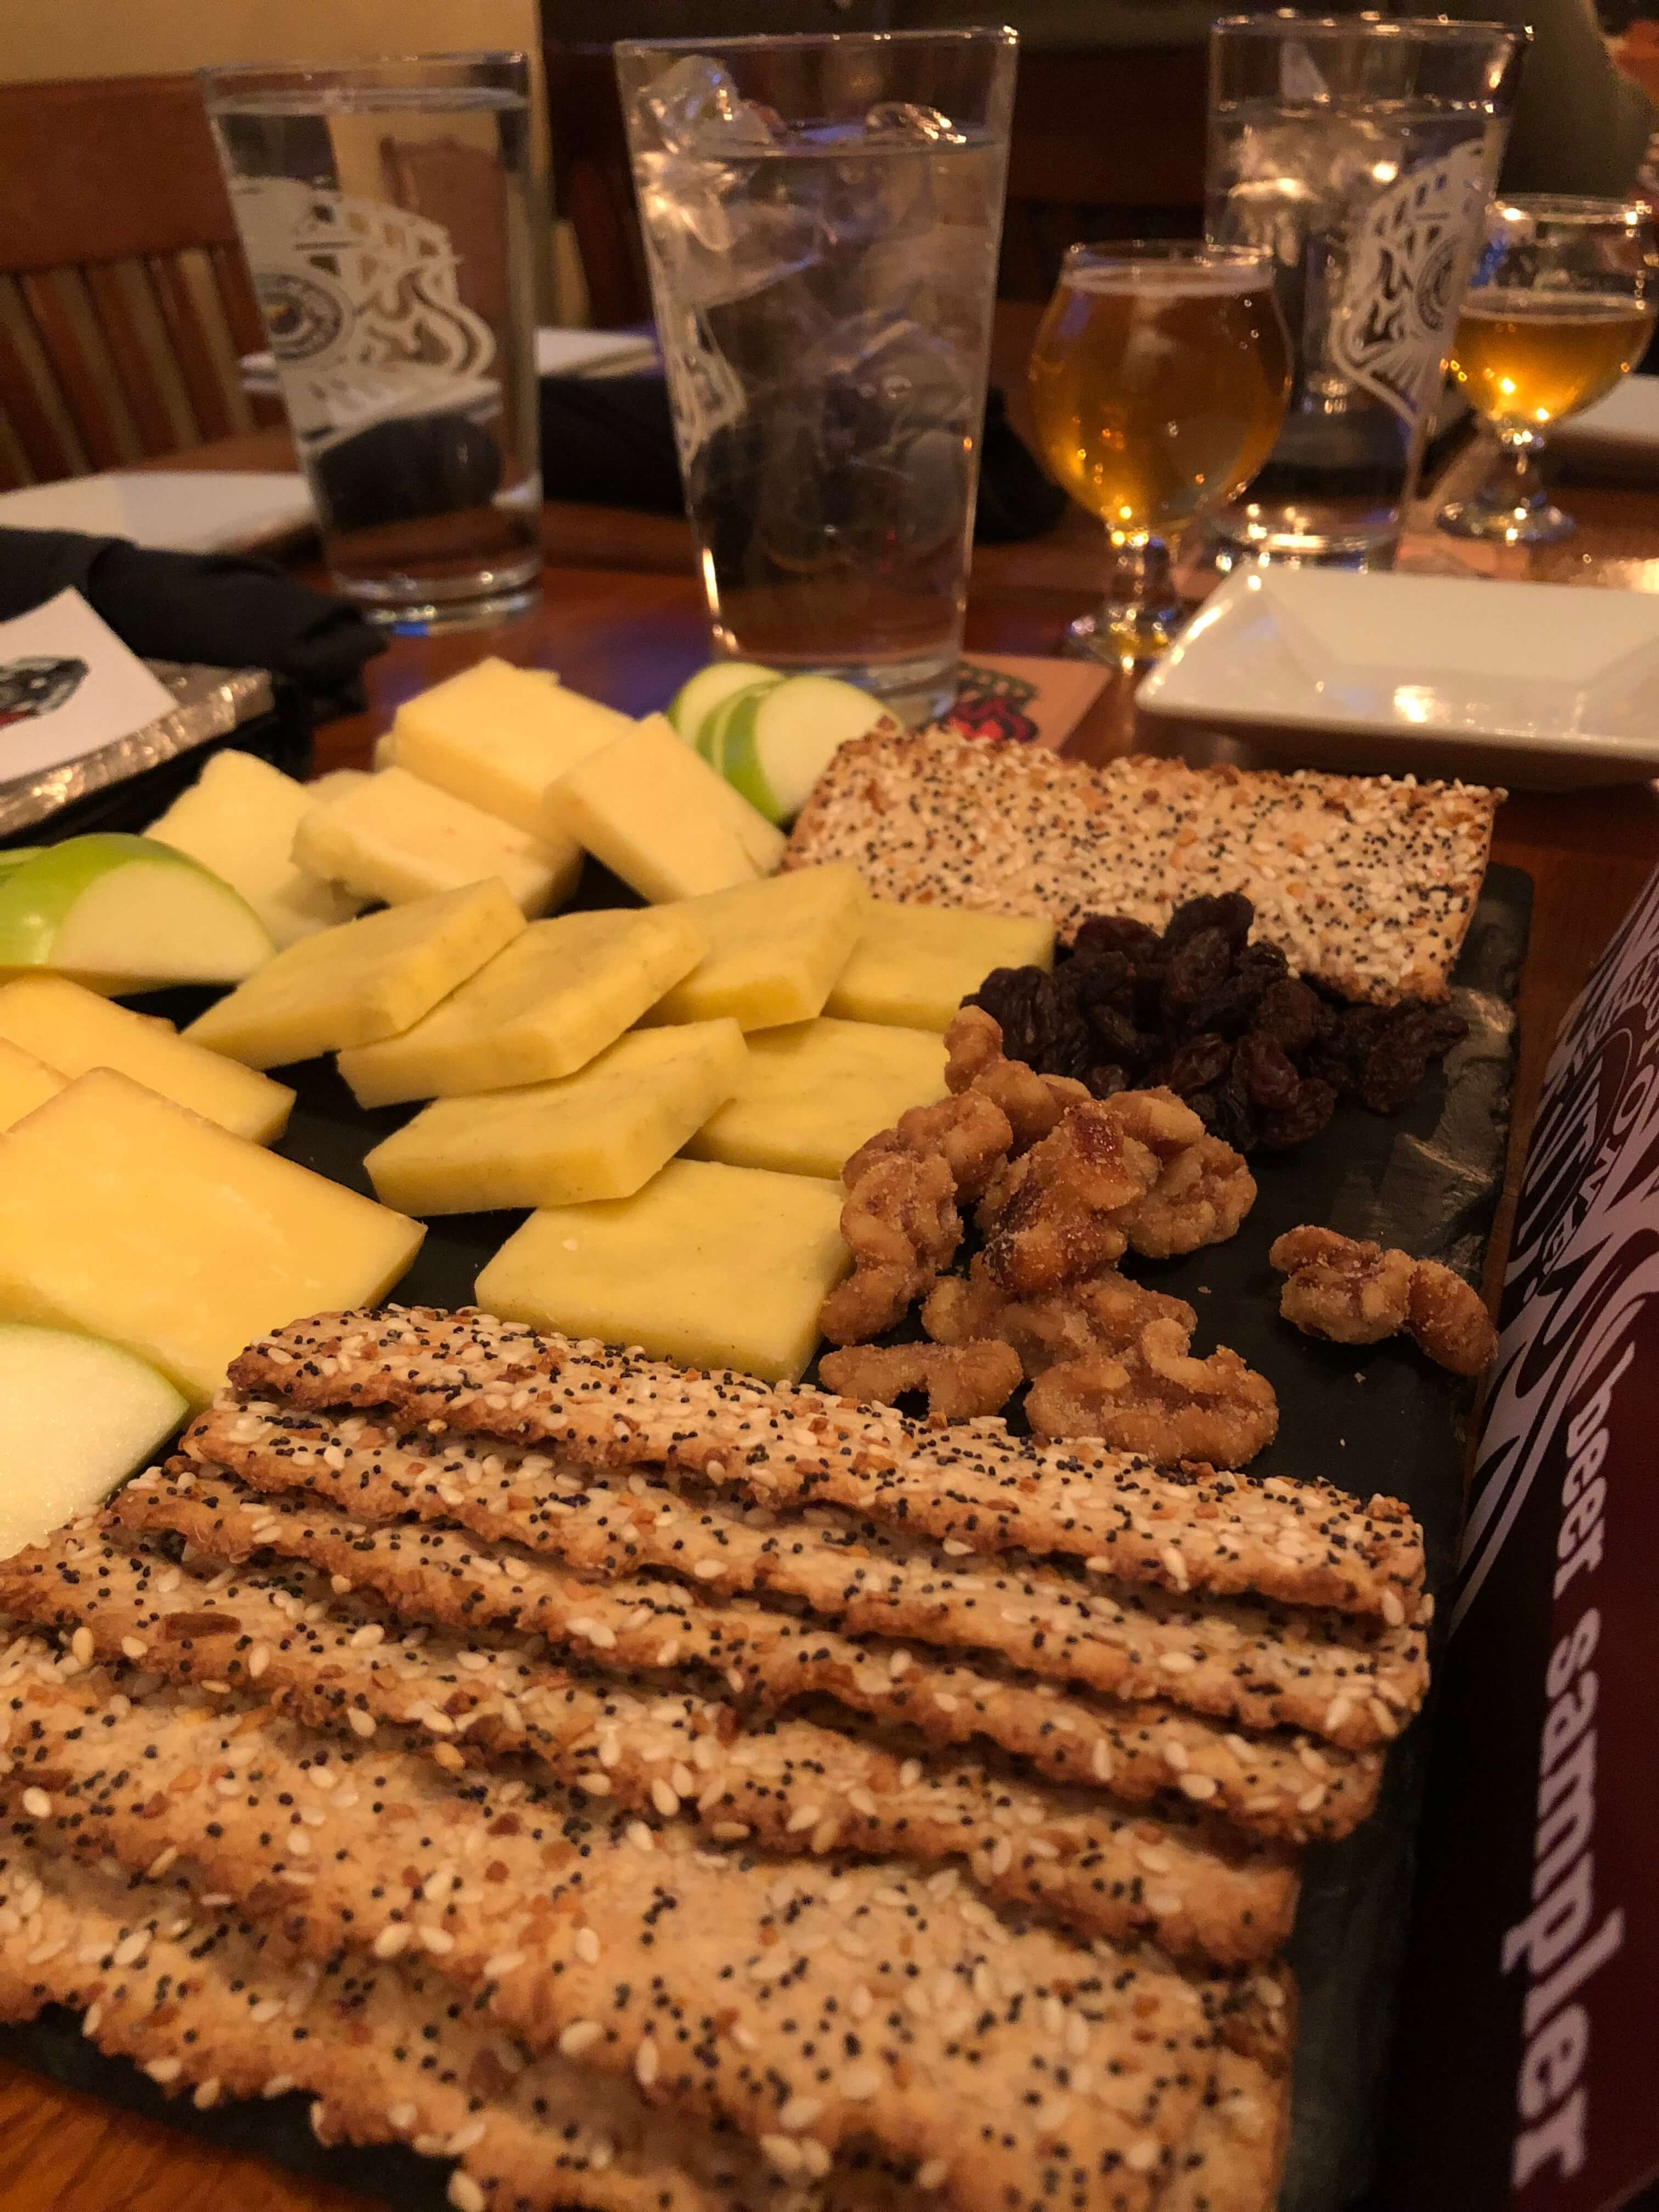 Whetson Station cheese plate and beers